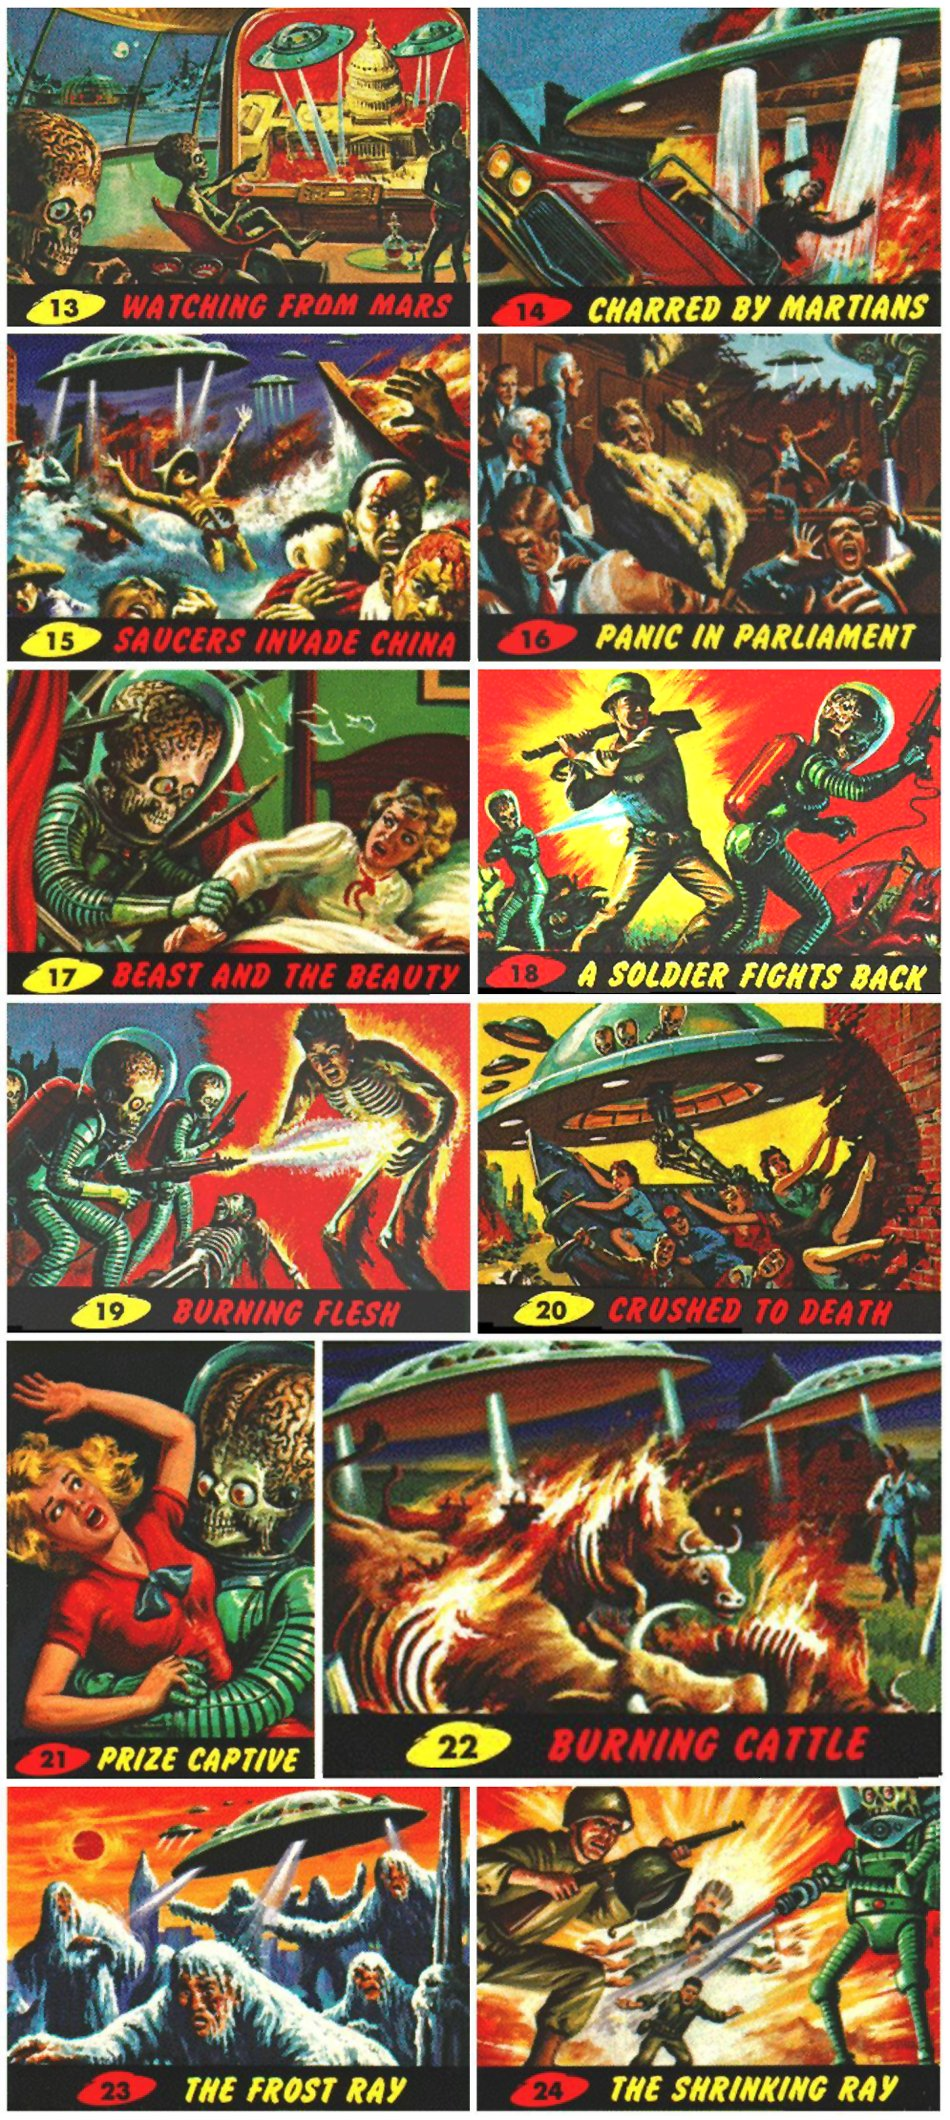 Archives - Old space magazines Topps2